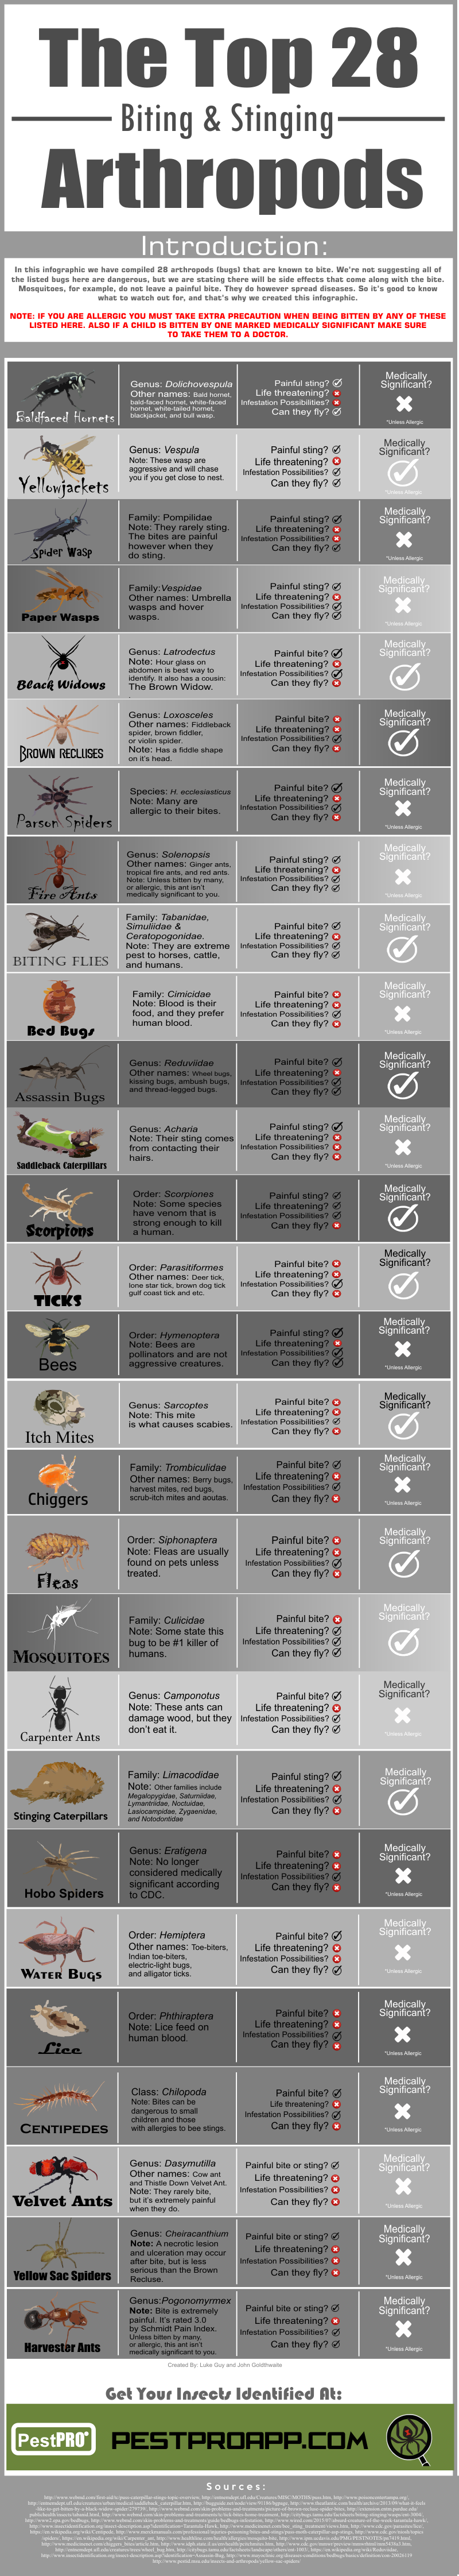 A Visual Guide to the Most Common Biting and Stinging Bugs